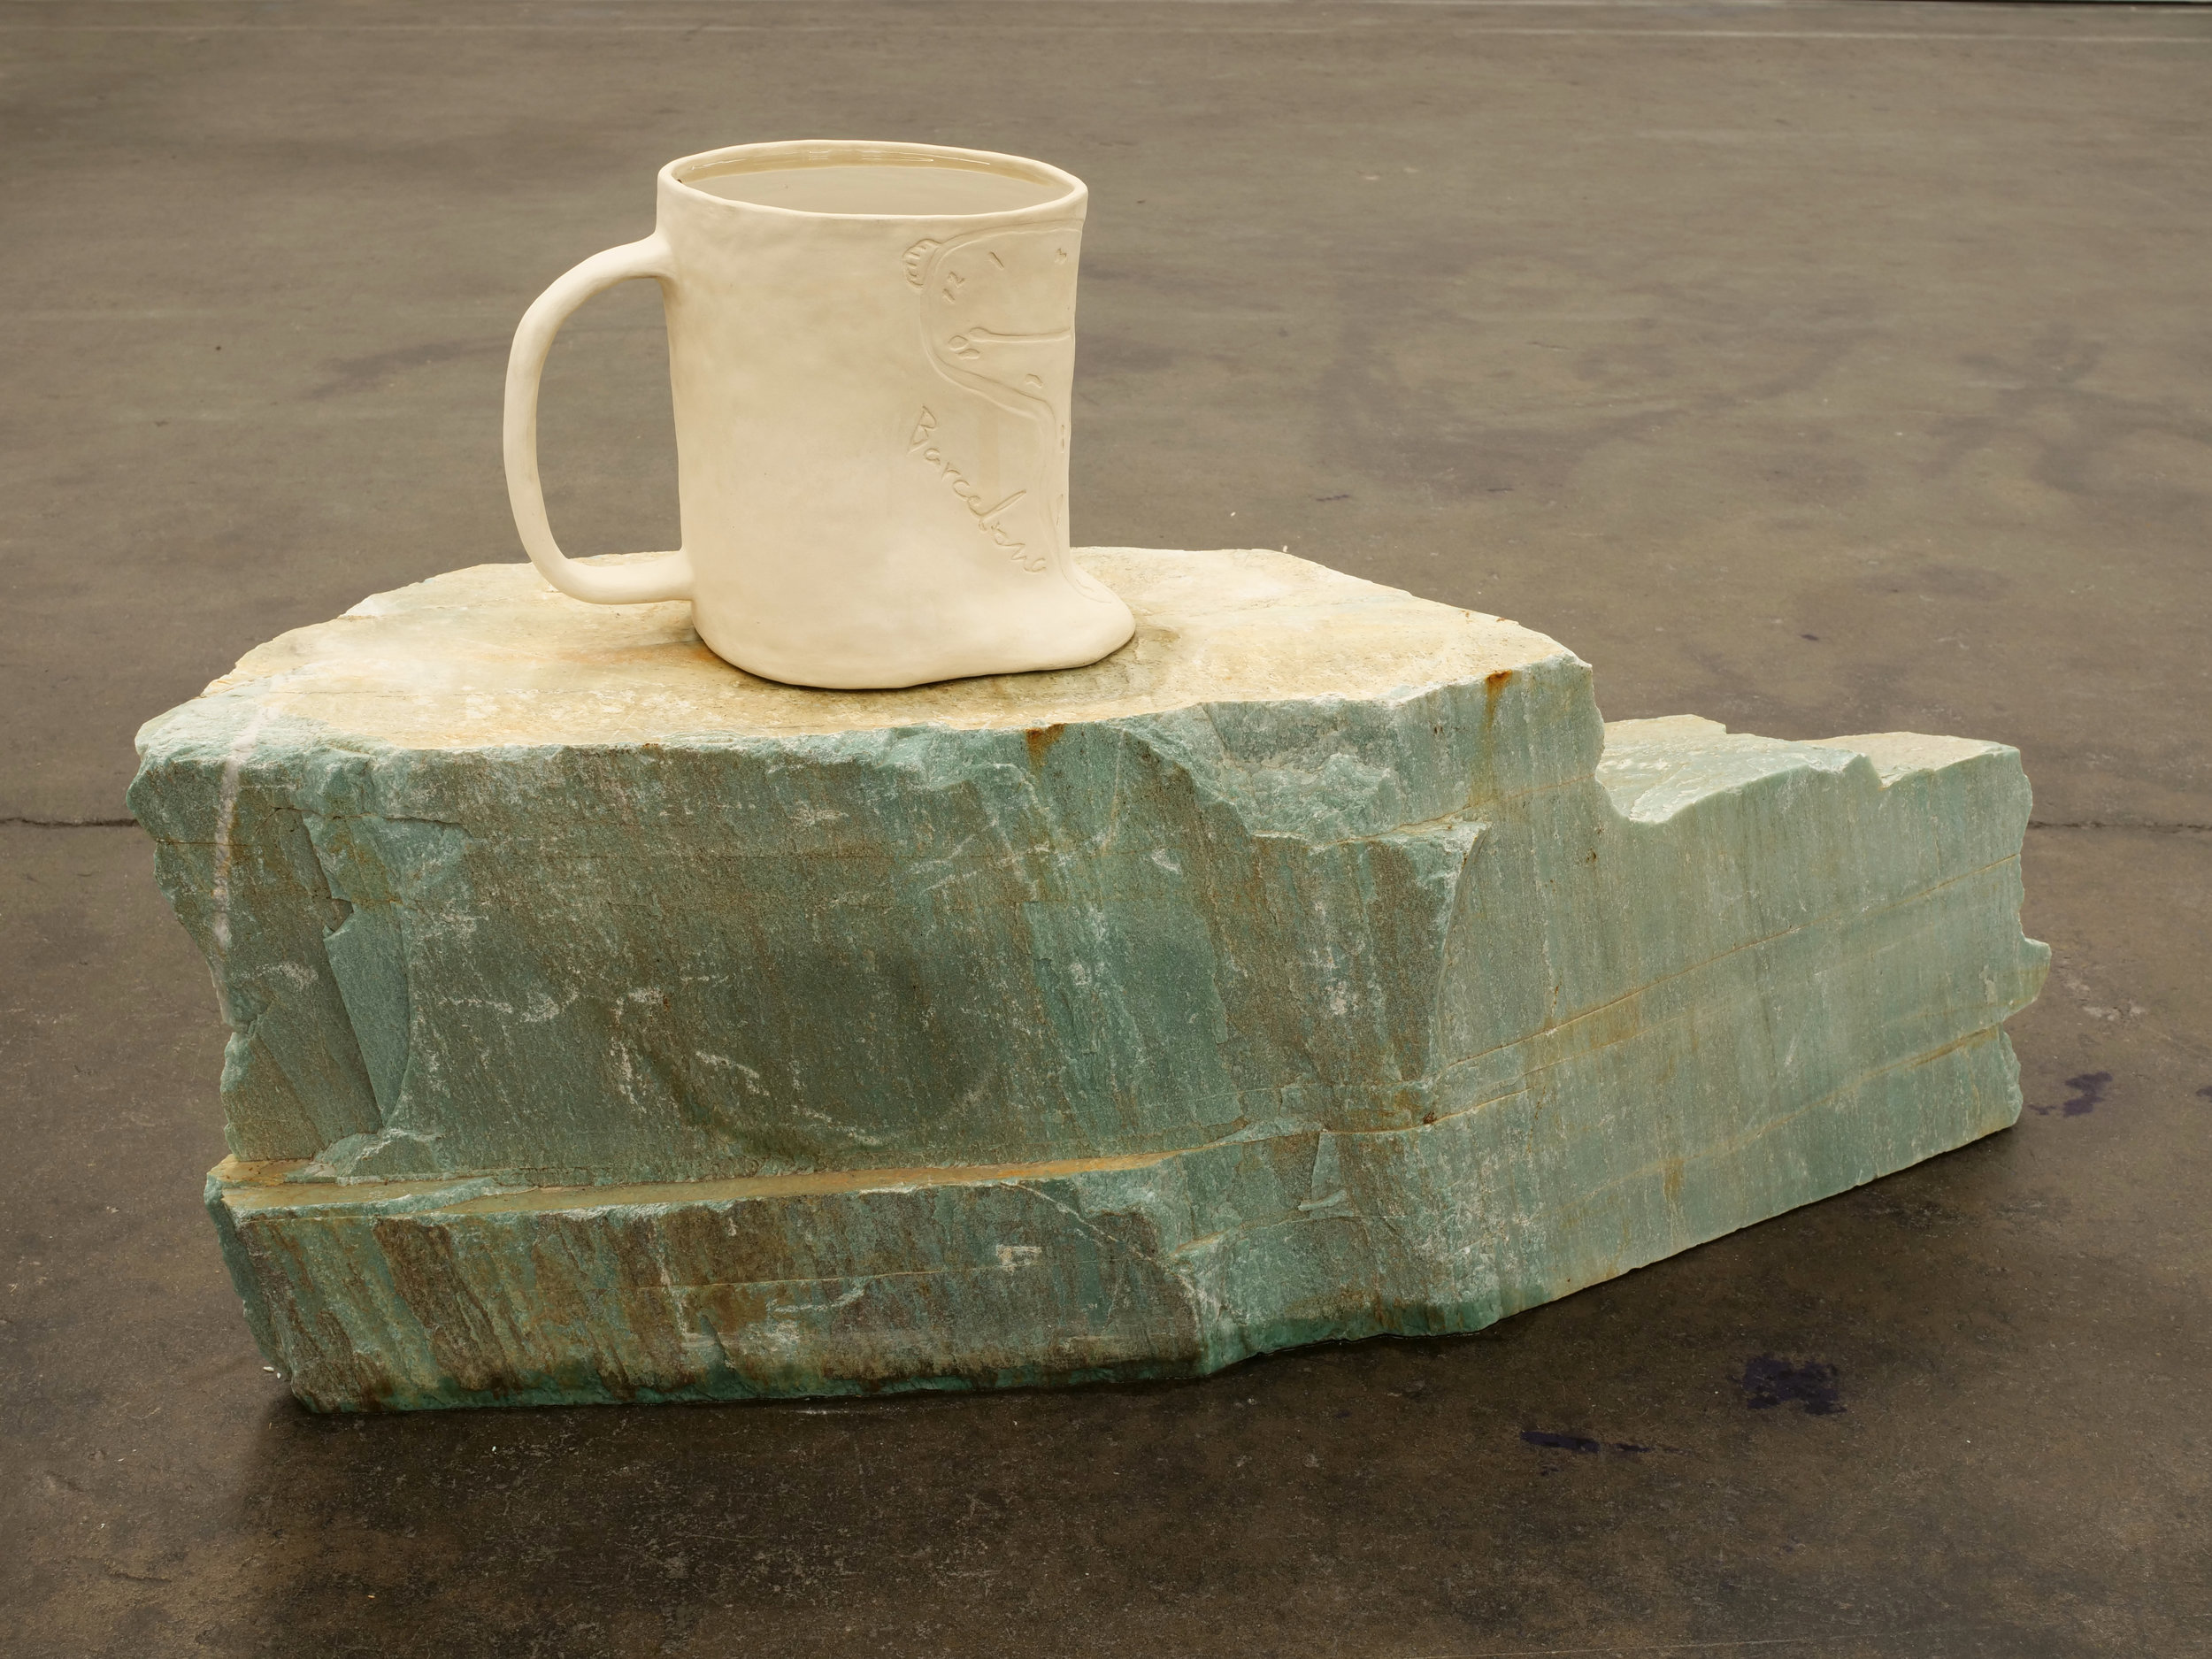 Will Rogan,  Filter (Barcelona) , 2018, Ceramic, sea water, stone, 26 1/2 x 48 x 13 1/2 in